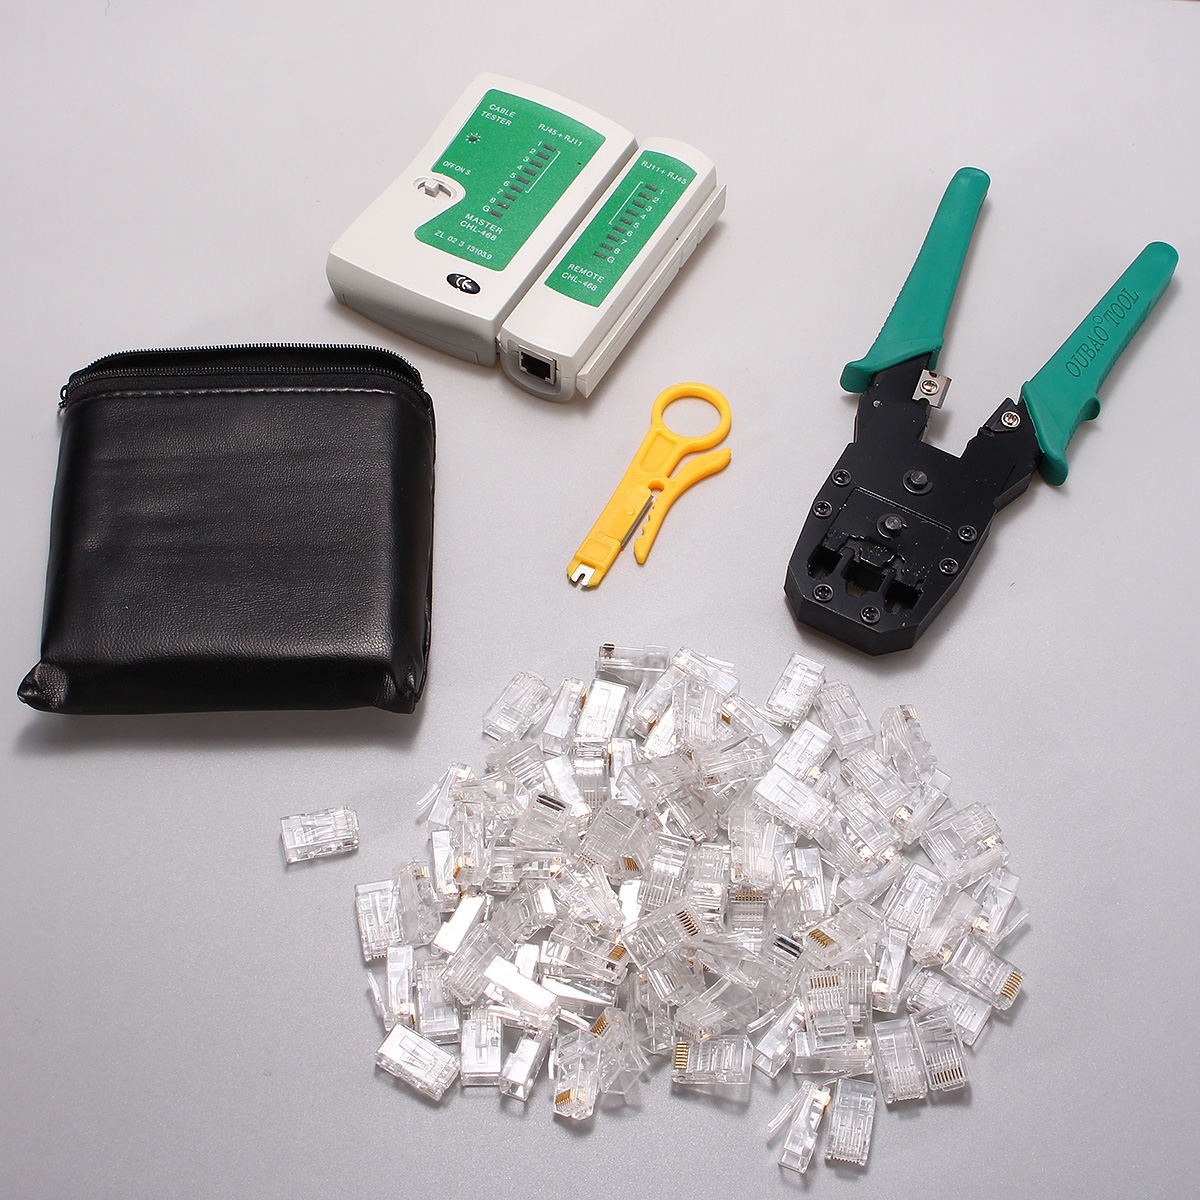 RJ45 RJ11 RJ12 CAT5 LAN Network Wire Stripper Pliers Crimper Cable Tester Tools Kit Set